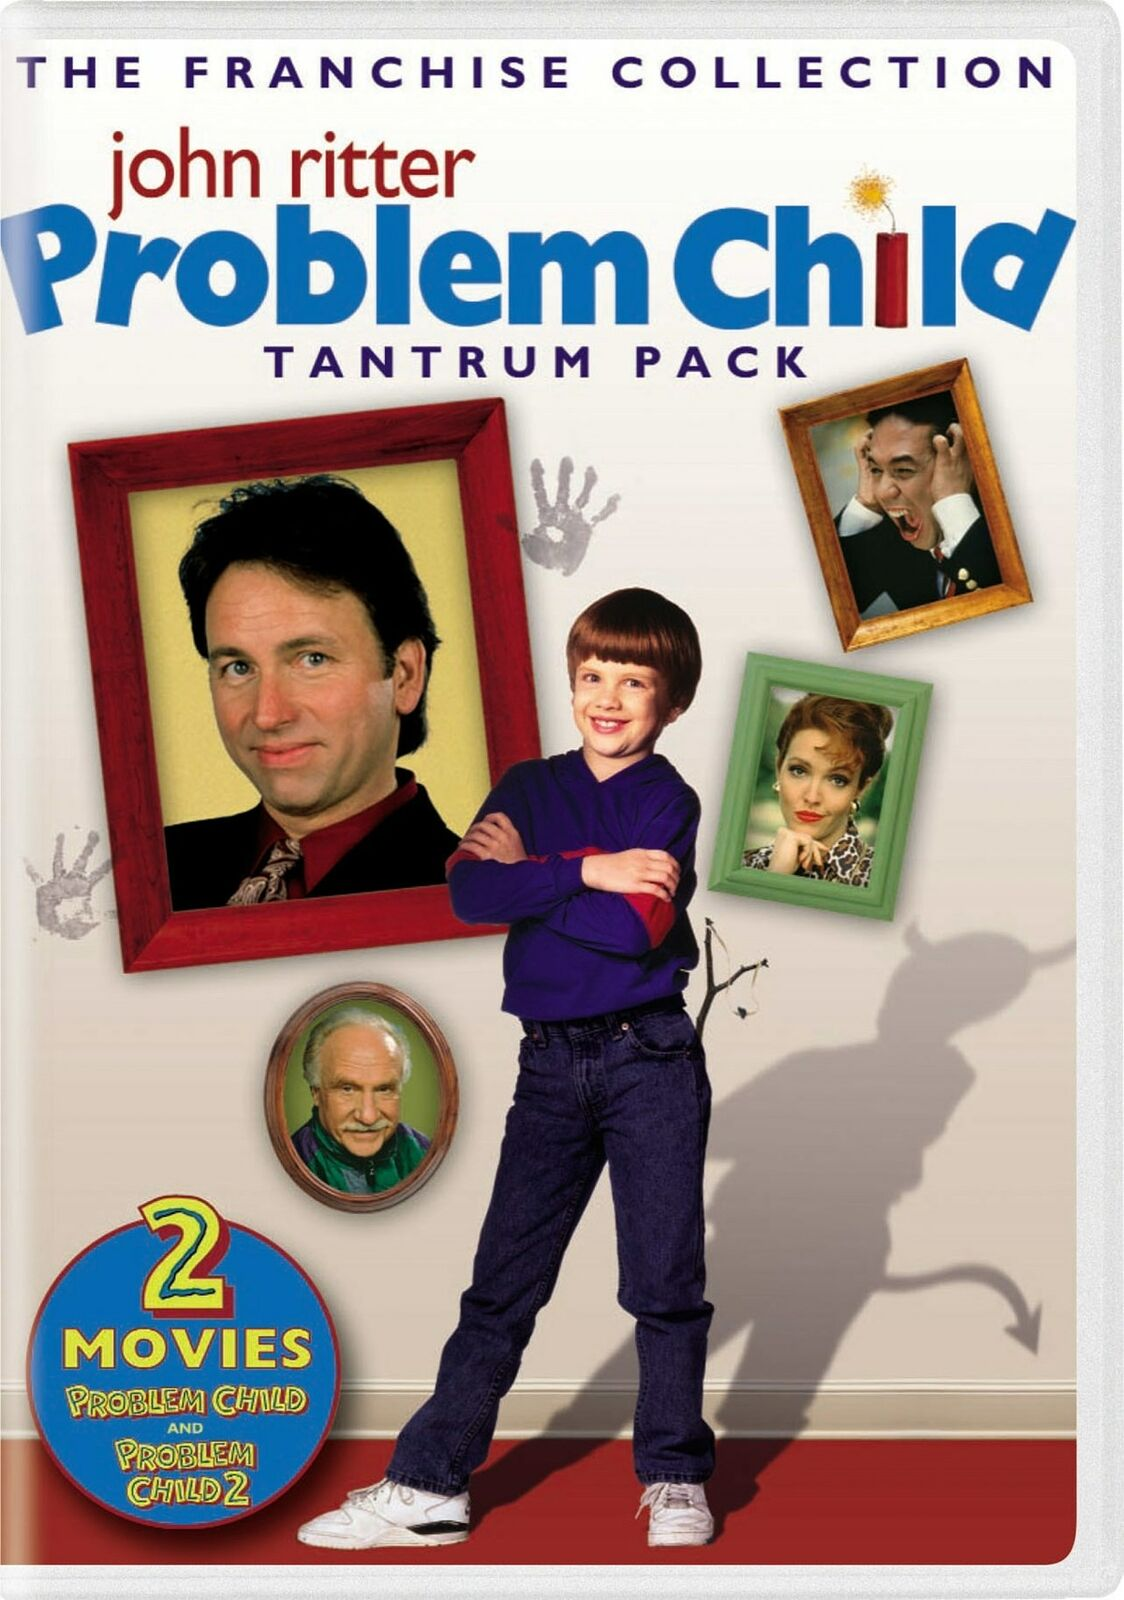 Problem Child: Tantrum Pack (2004 DVD)